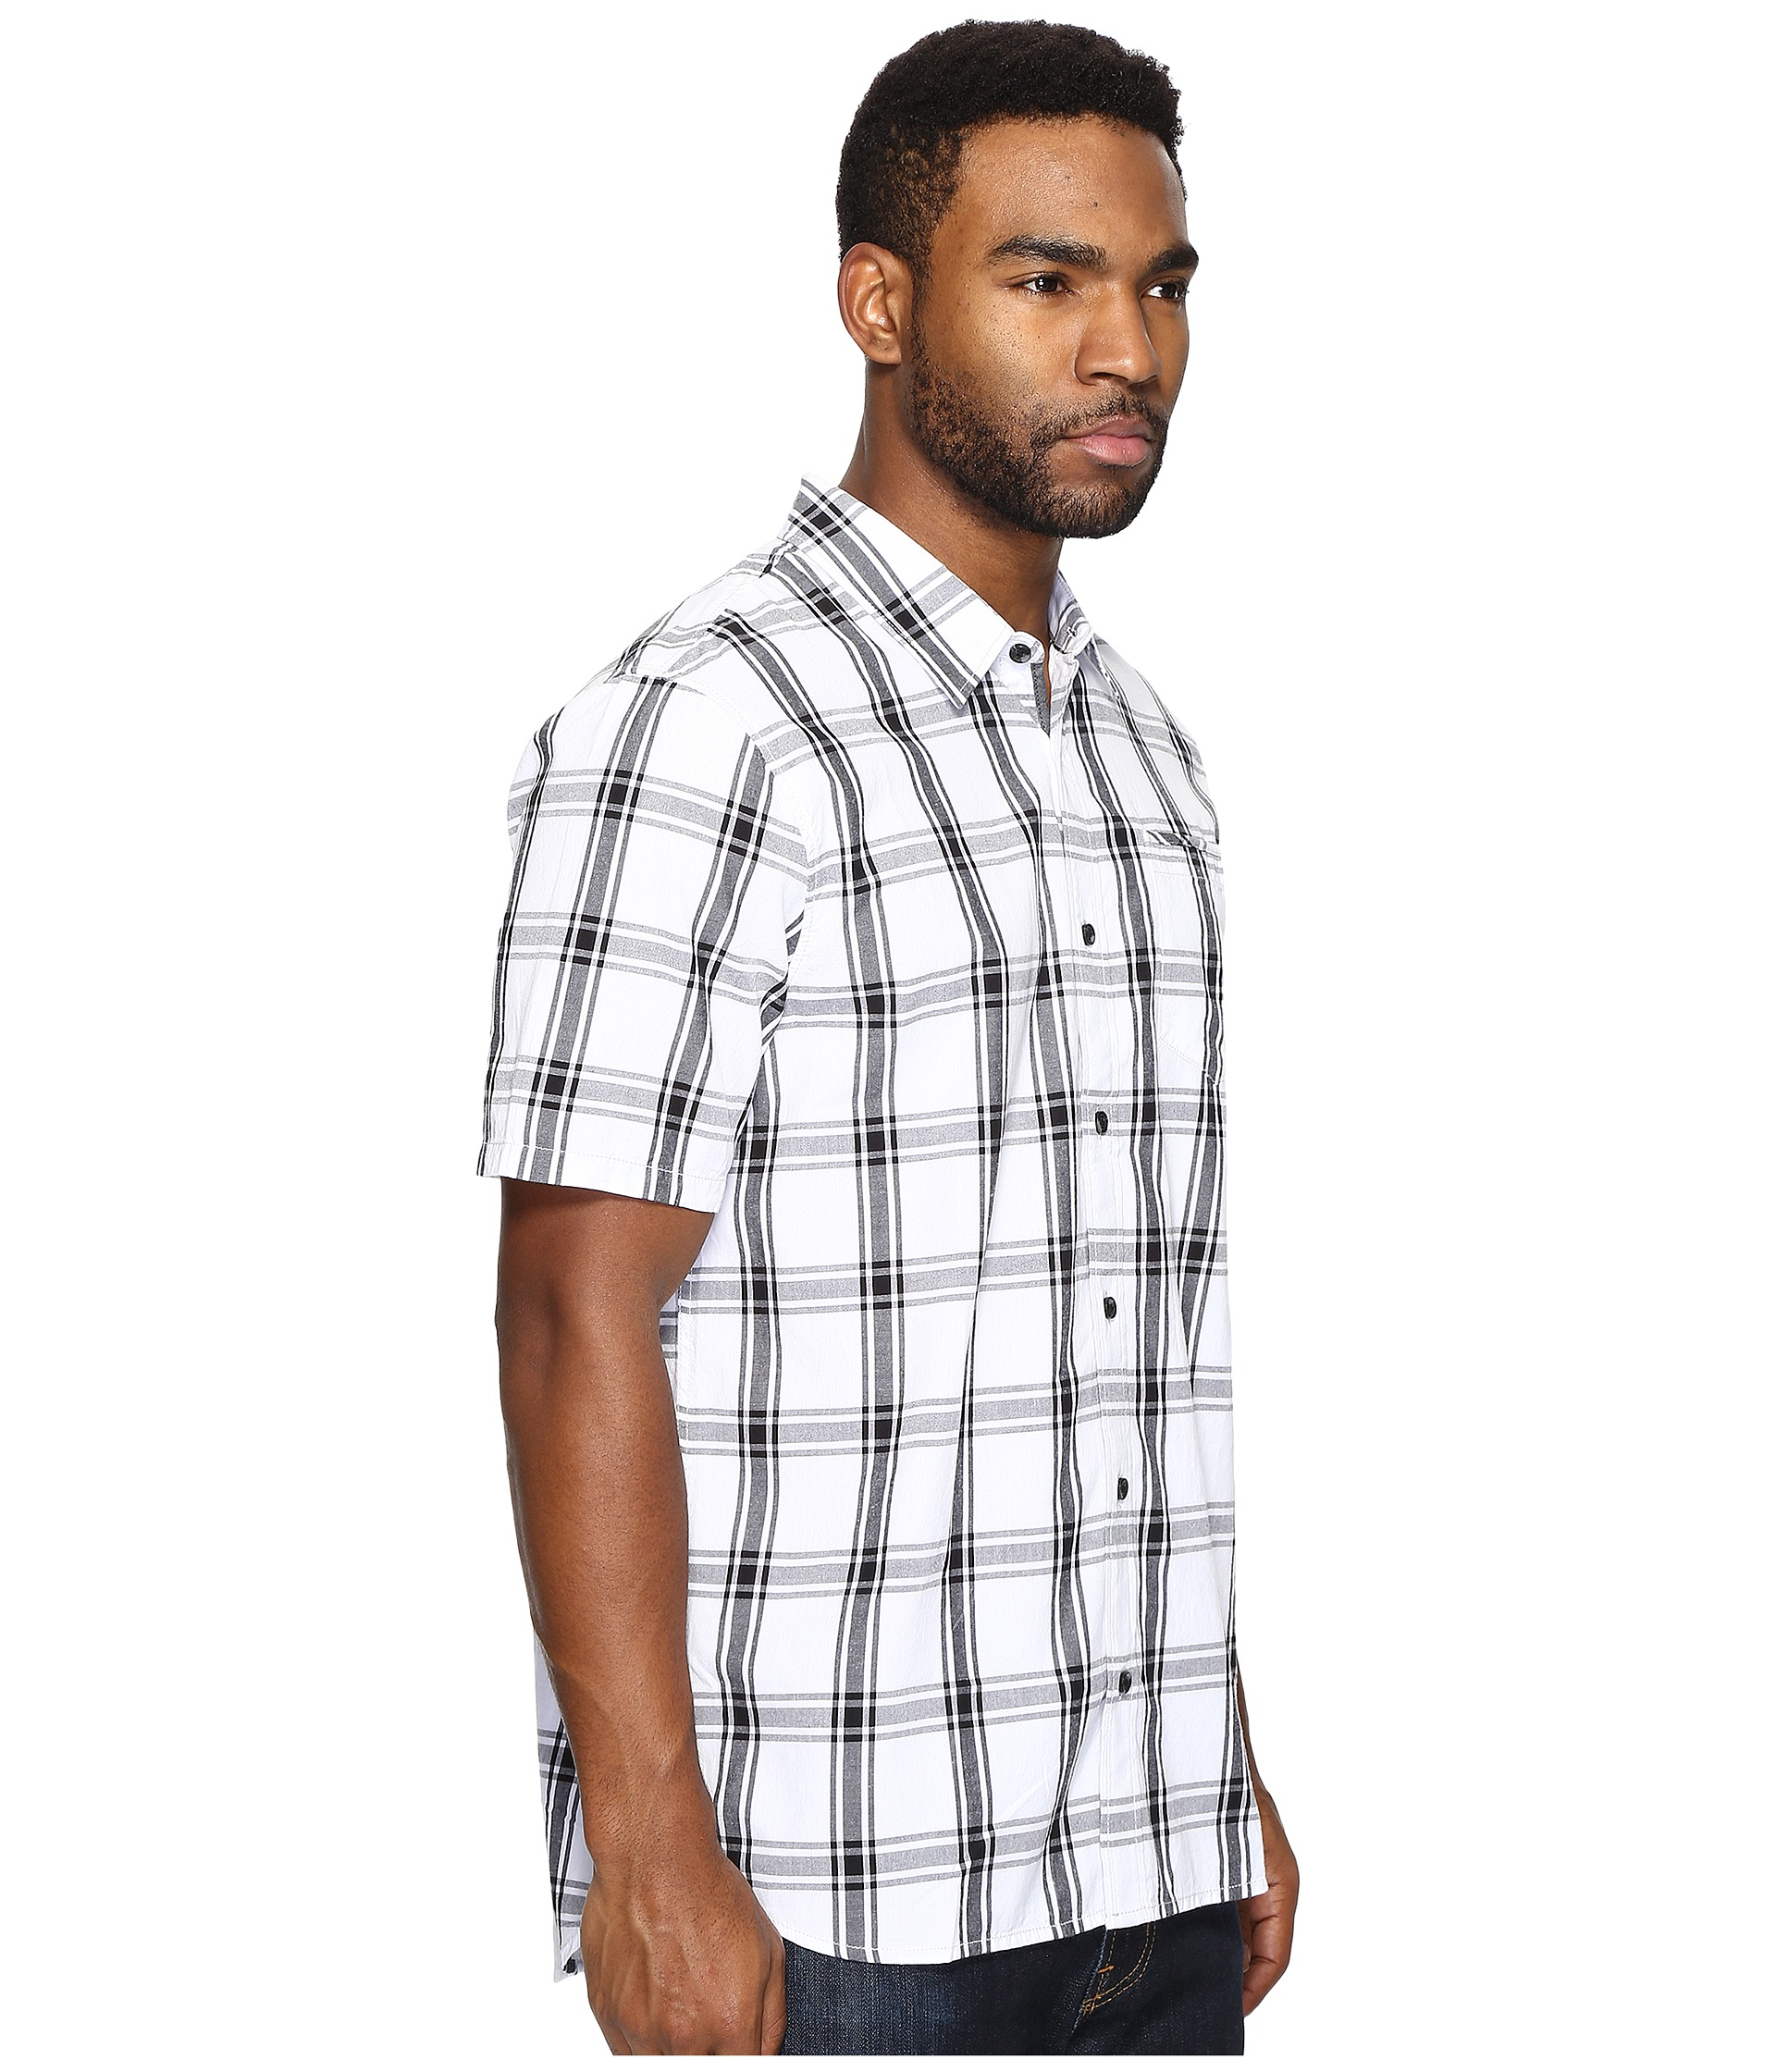 Vans stafford short sleeve woven white black for Stafford white short sleeve dress shirts